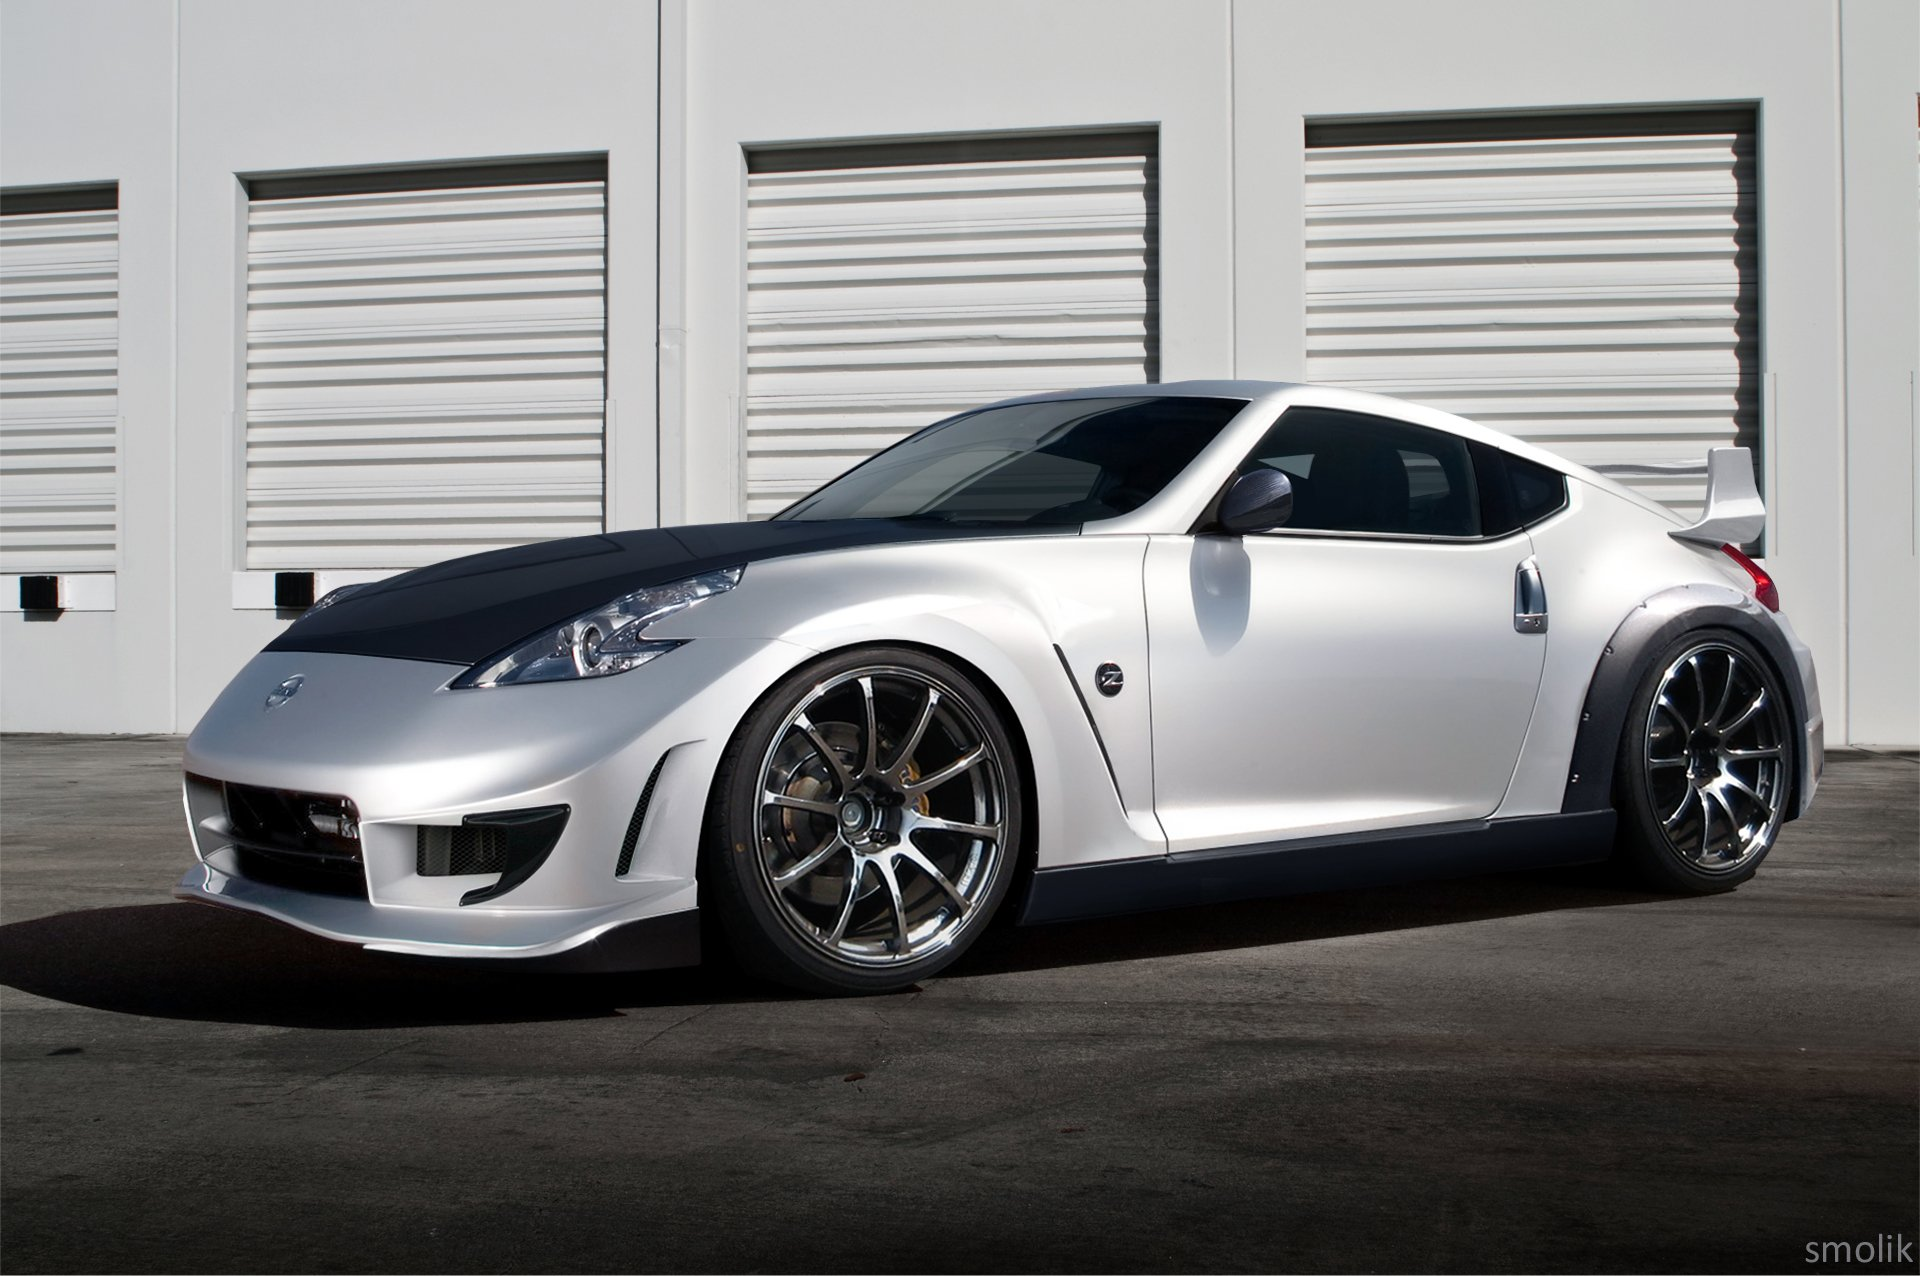 nissan 370z coupe tuning cars japan wallpaper 1920x1276. Black Bedroom Furniture Sets. Home Design Ideas